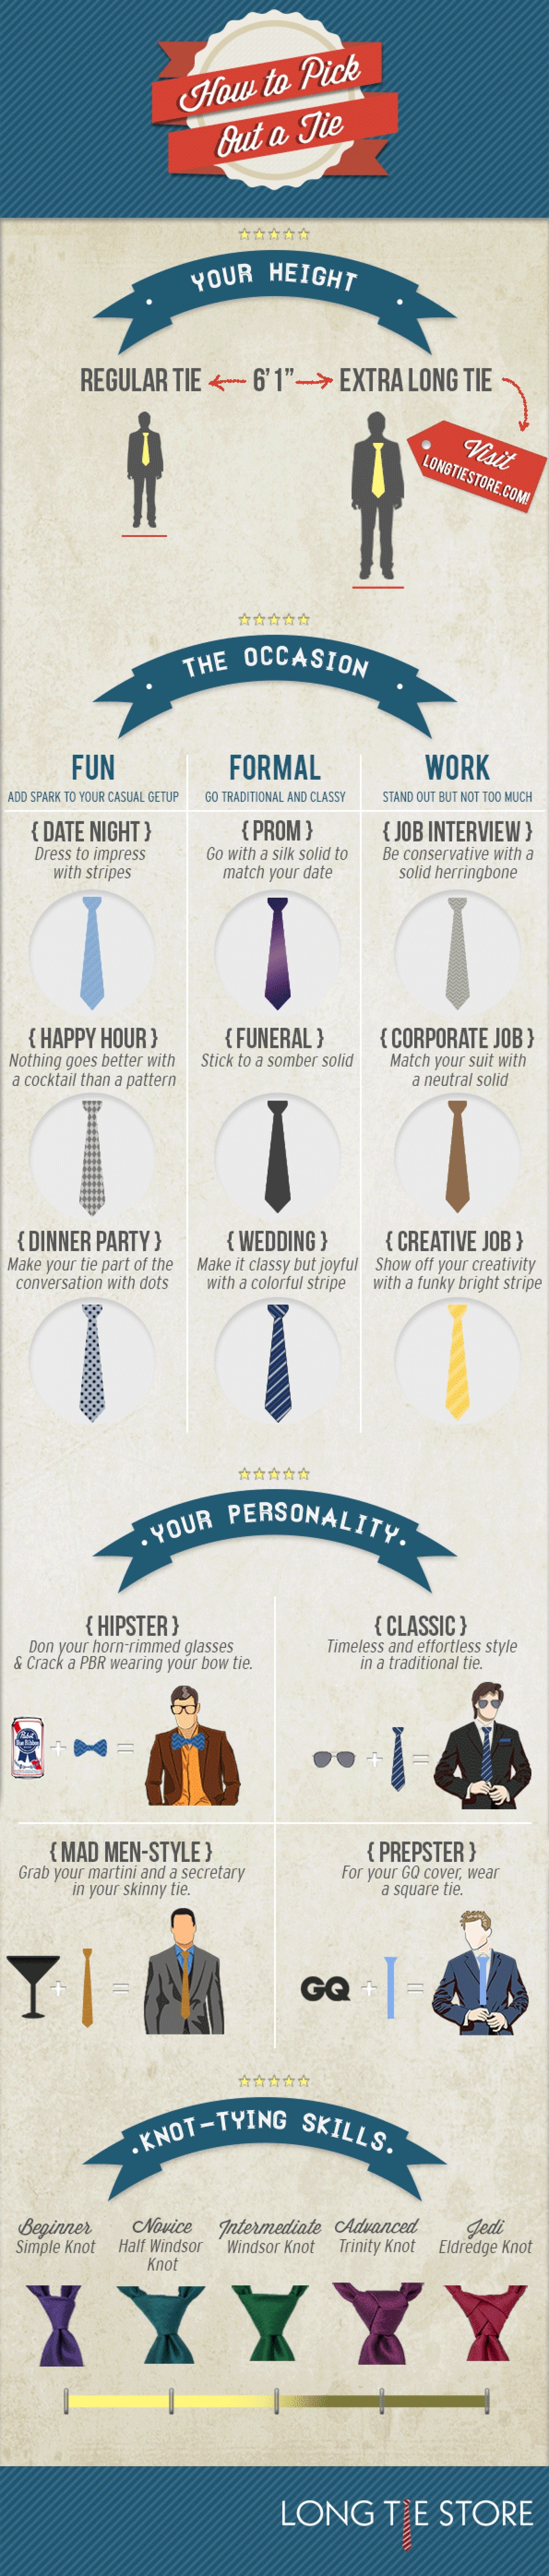 tie-selection-guide, how to pick the right tie for any occasion